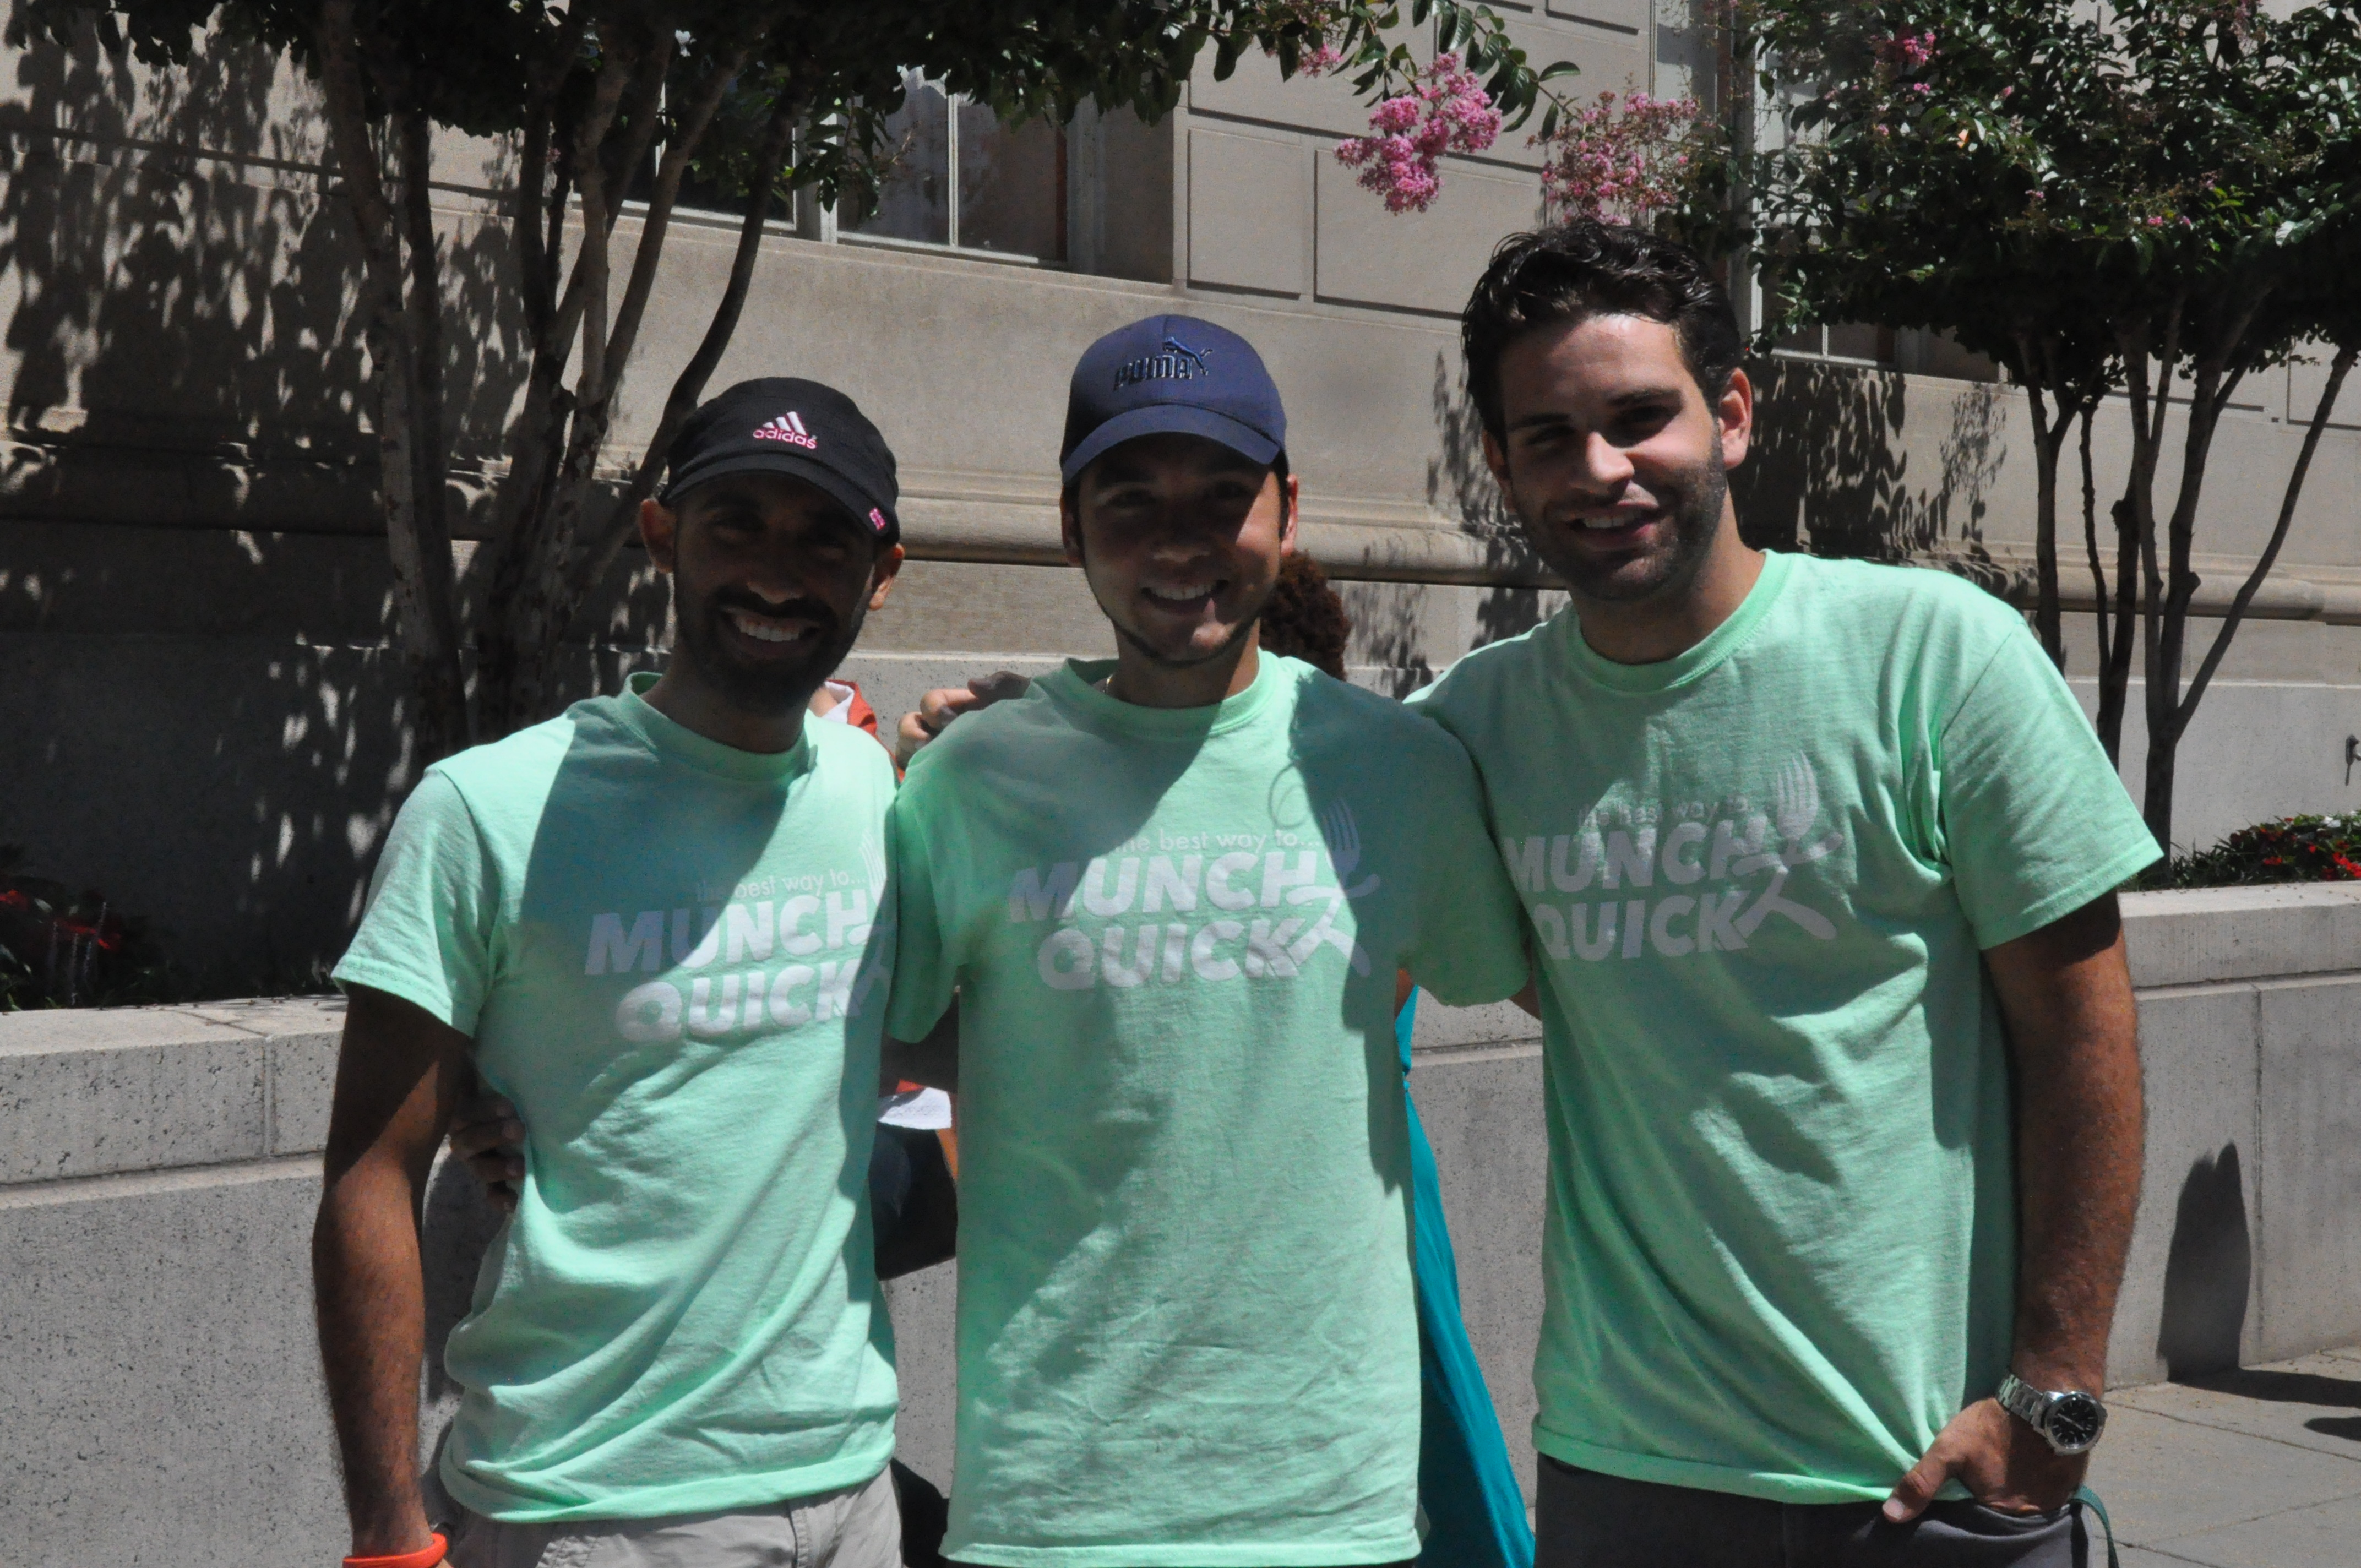 Startup delivers fresh, healthy $6 lunch to D.C. in 20 minutes